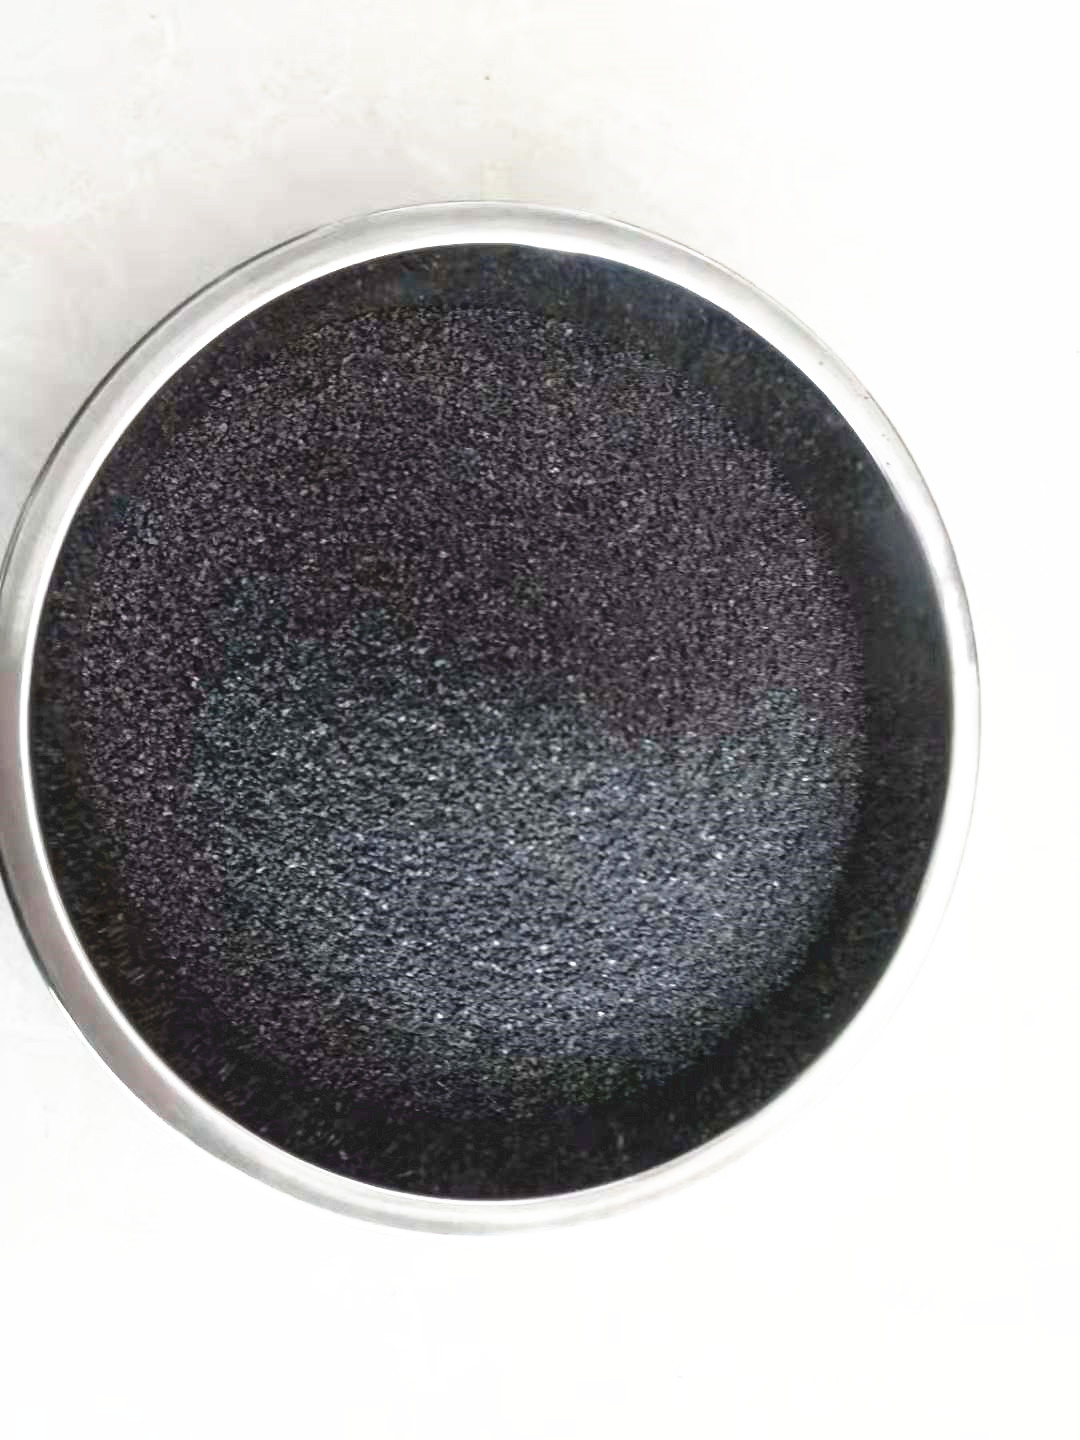 0.2-1mm Graphitized Petroleum Coke for The Steel